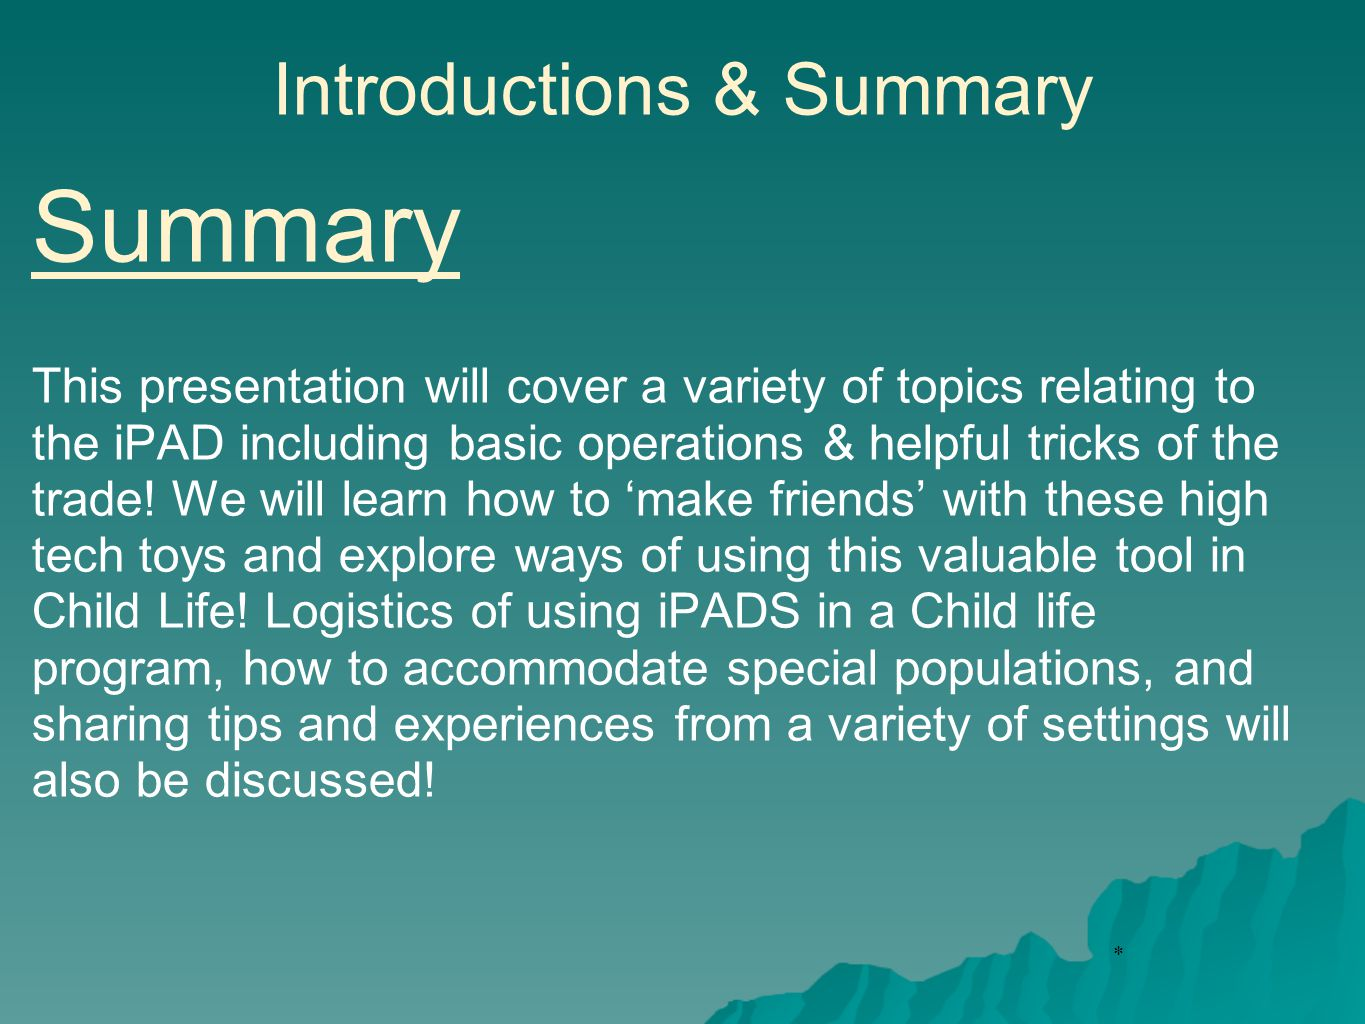 * Introductions & Summary Summary This presentation will cover a variety of topics relating to the iPAD including basic operations & helpful tricks of